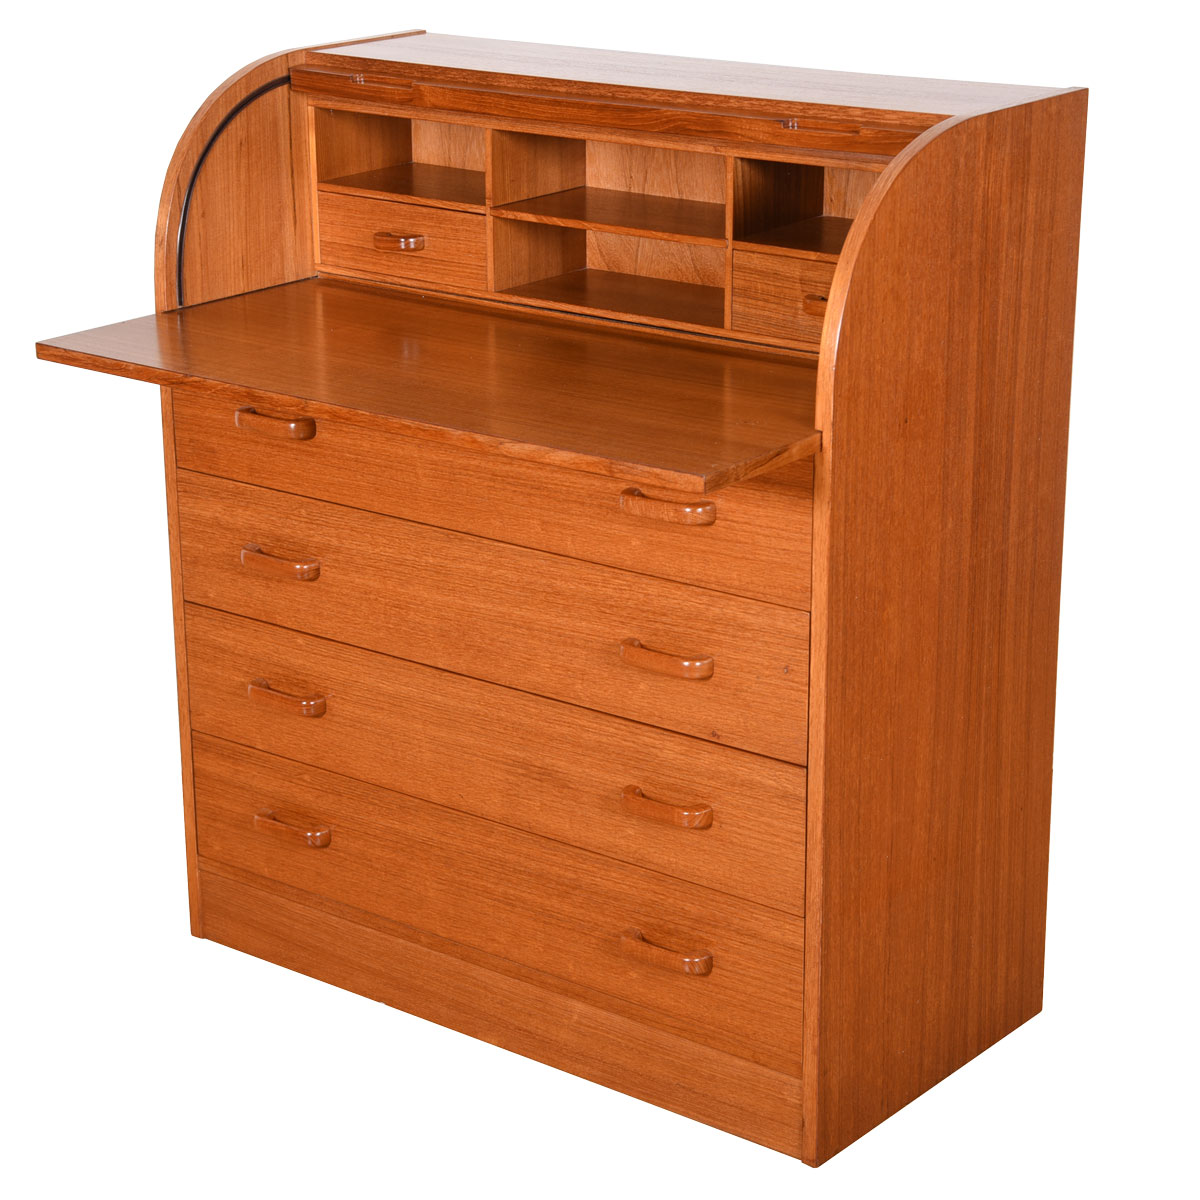 Danish Modern Rolltop Secretary Desk / Dresser in Teak